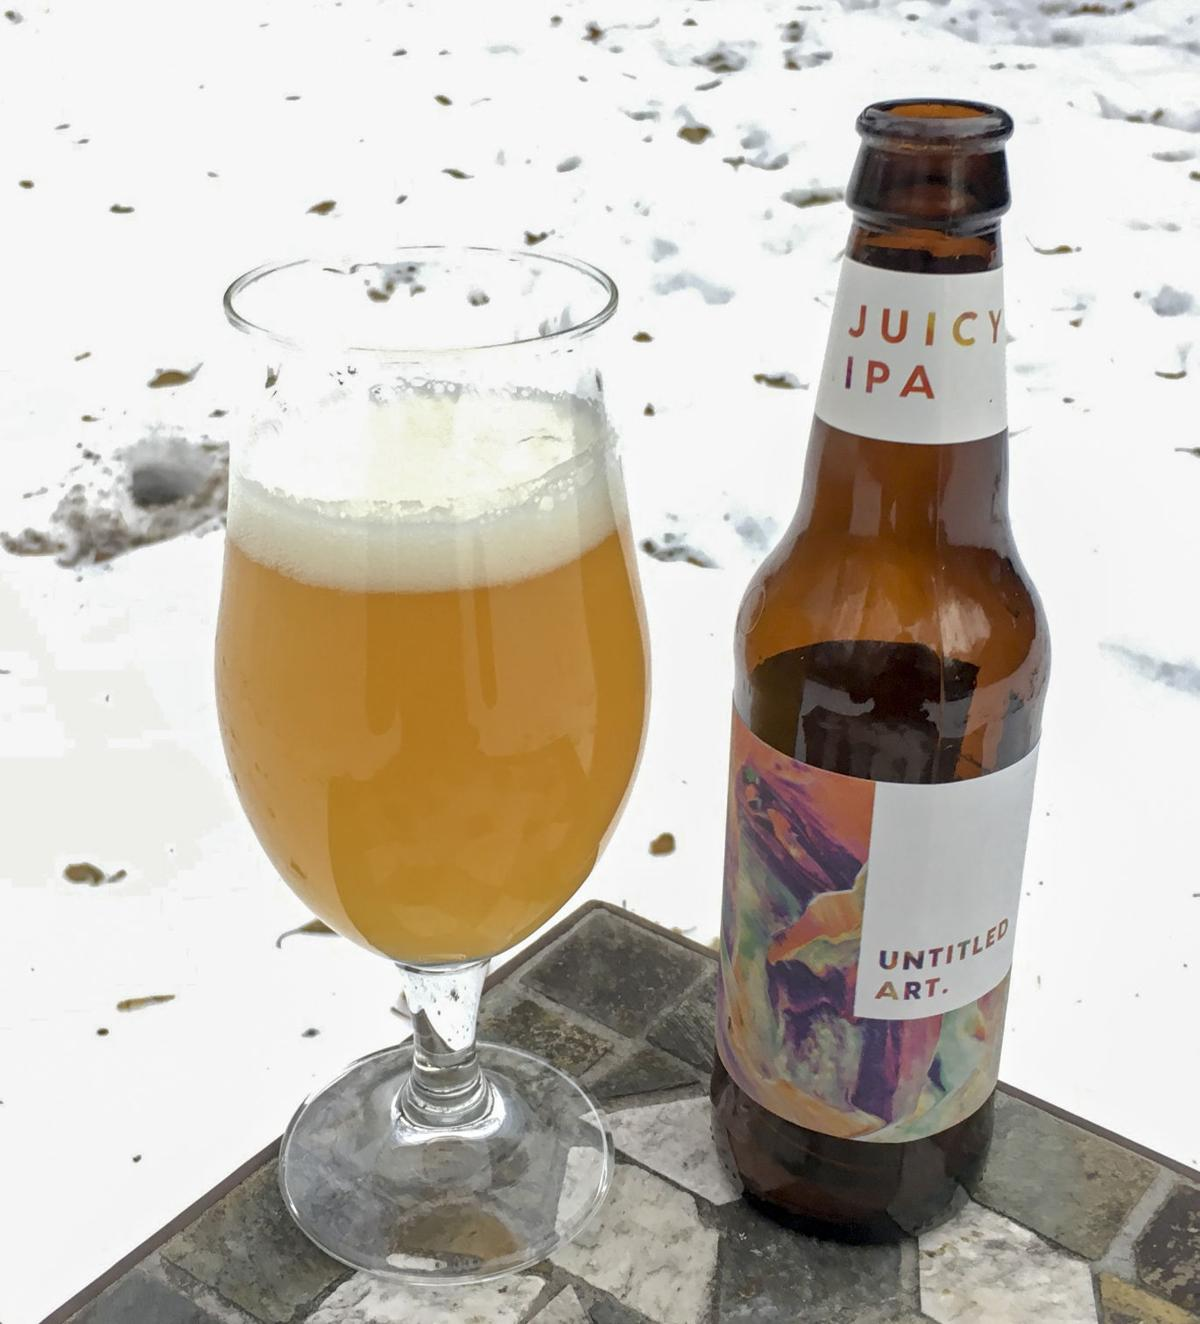 Untitled Art Juicy IPA